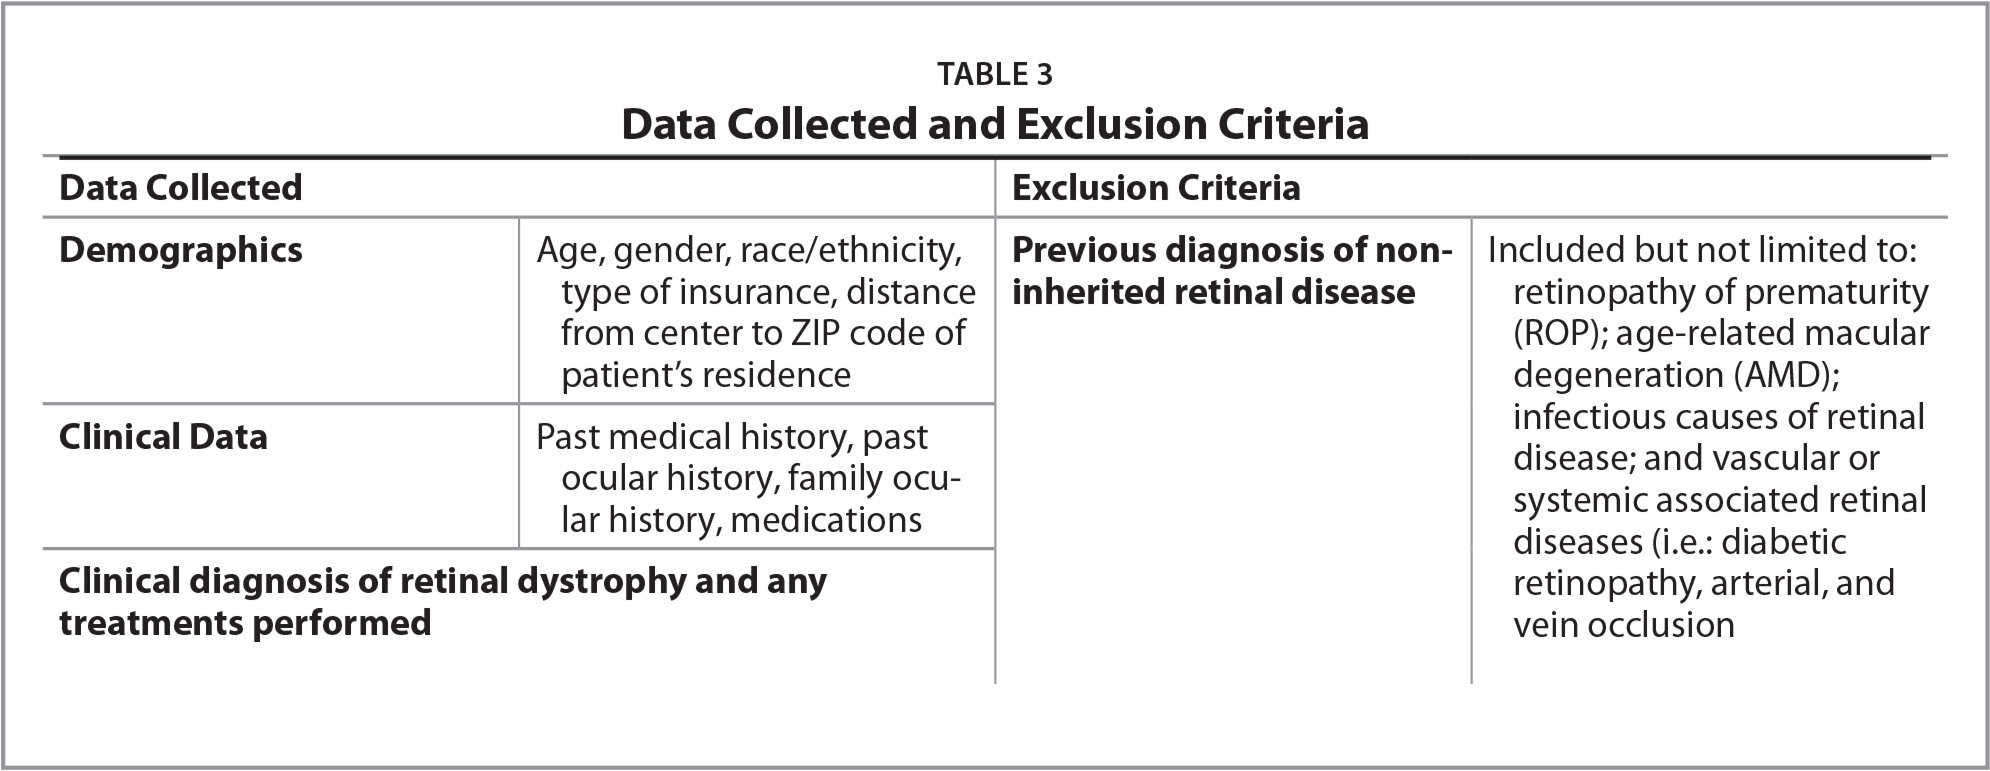 Data Collected and Exclusion Criteria